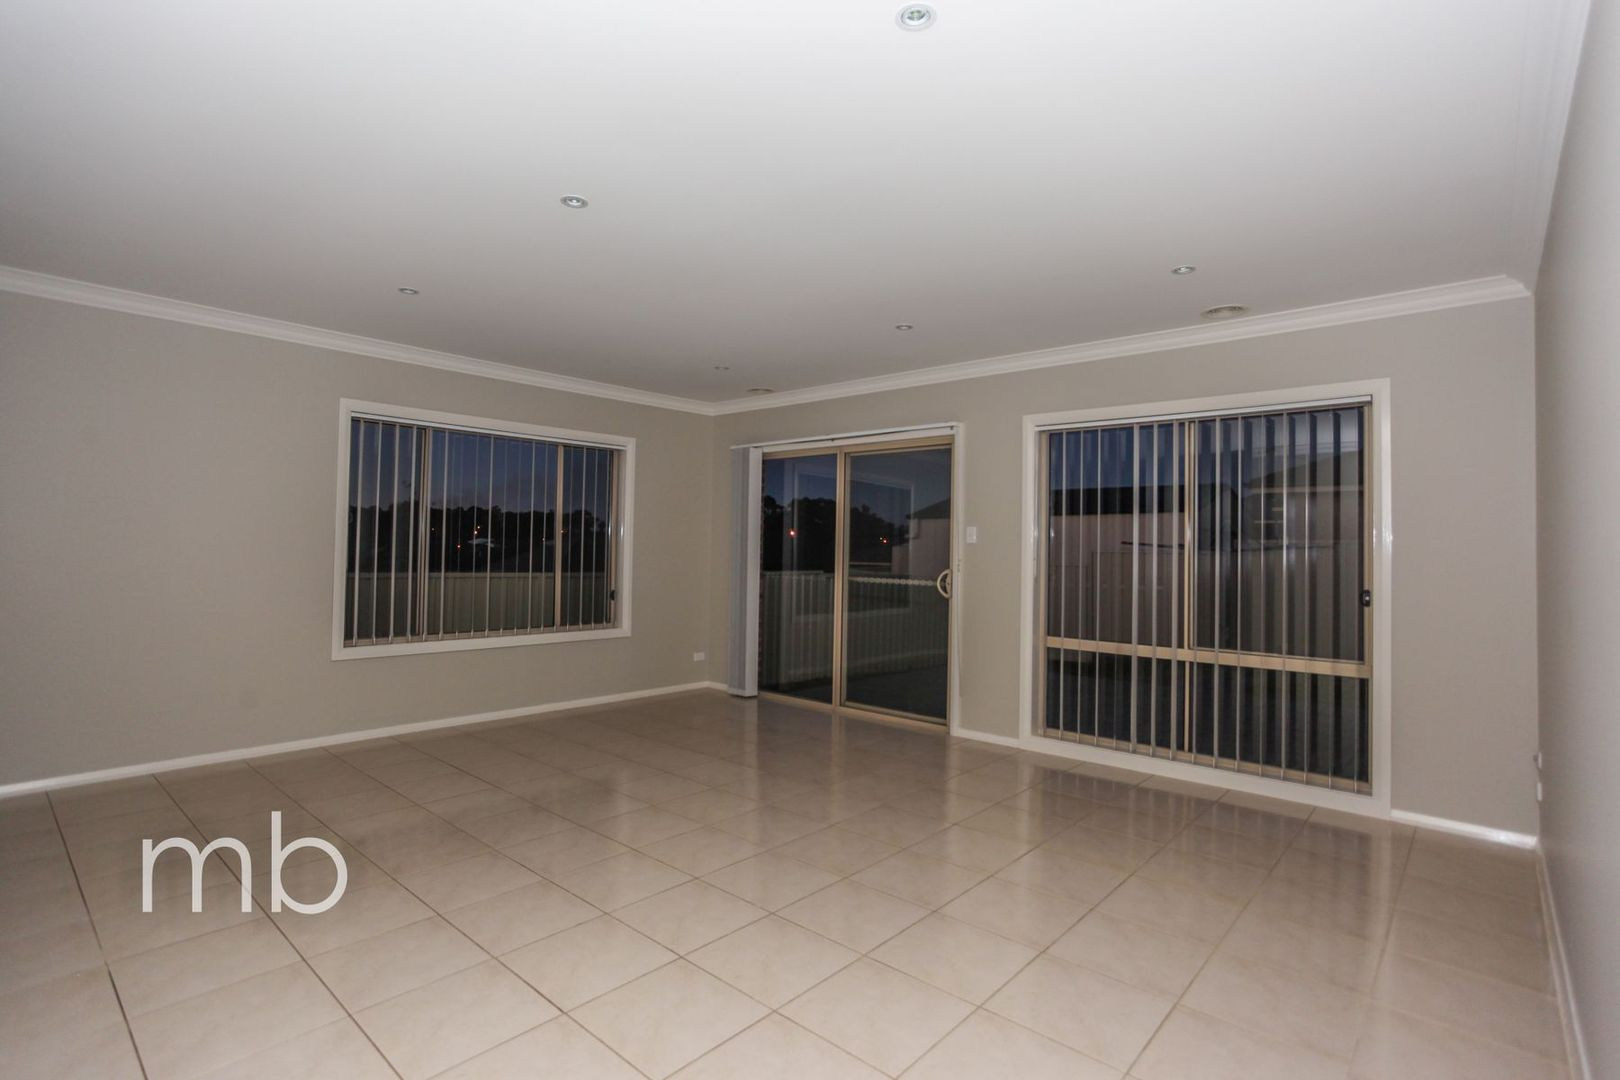 1 Romano Drive, Orange NSW 2800, Image 2